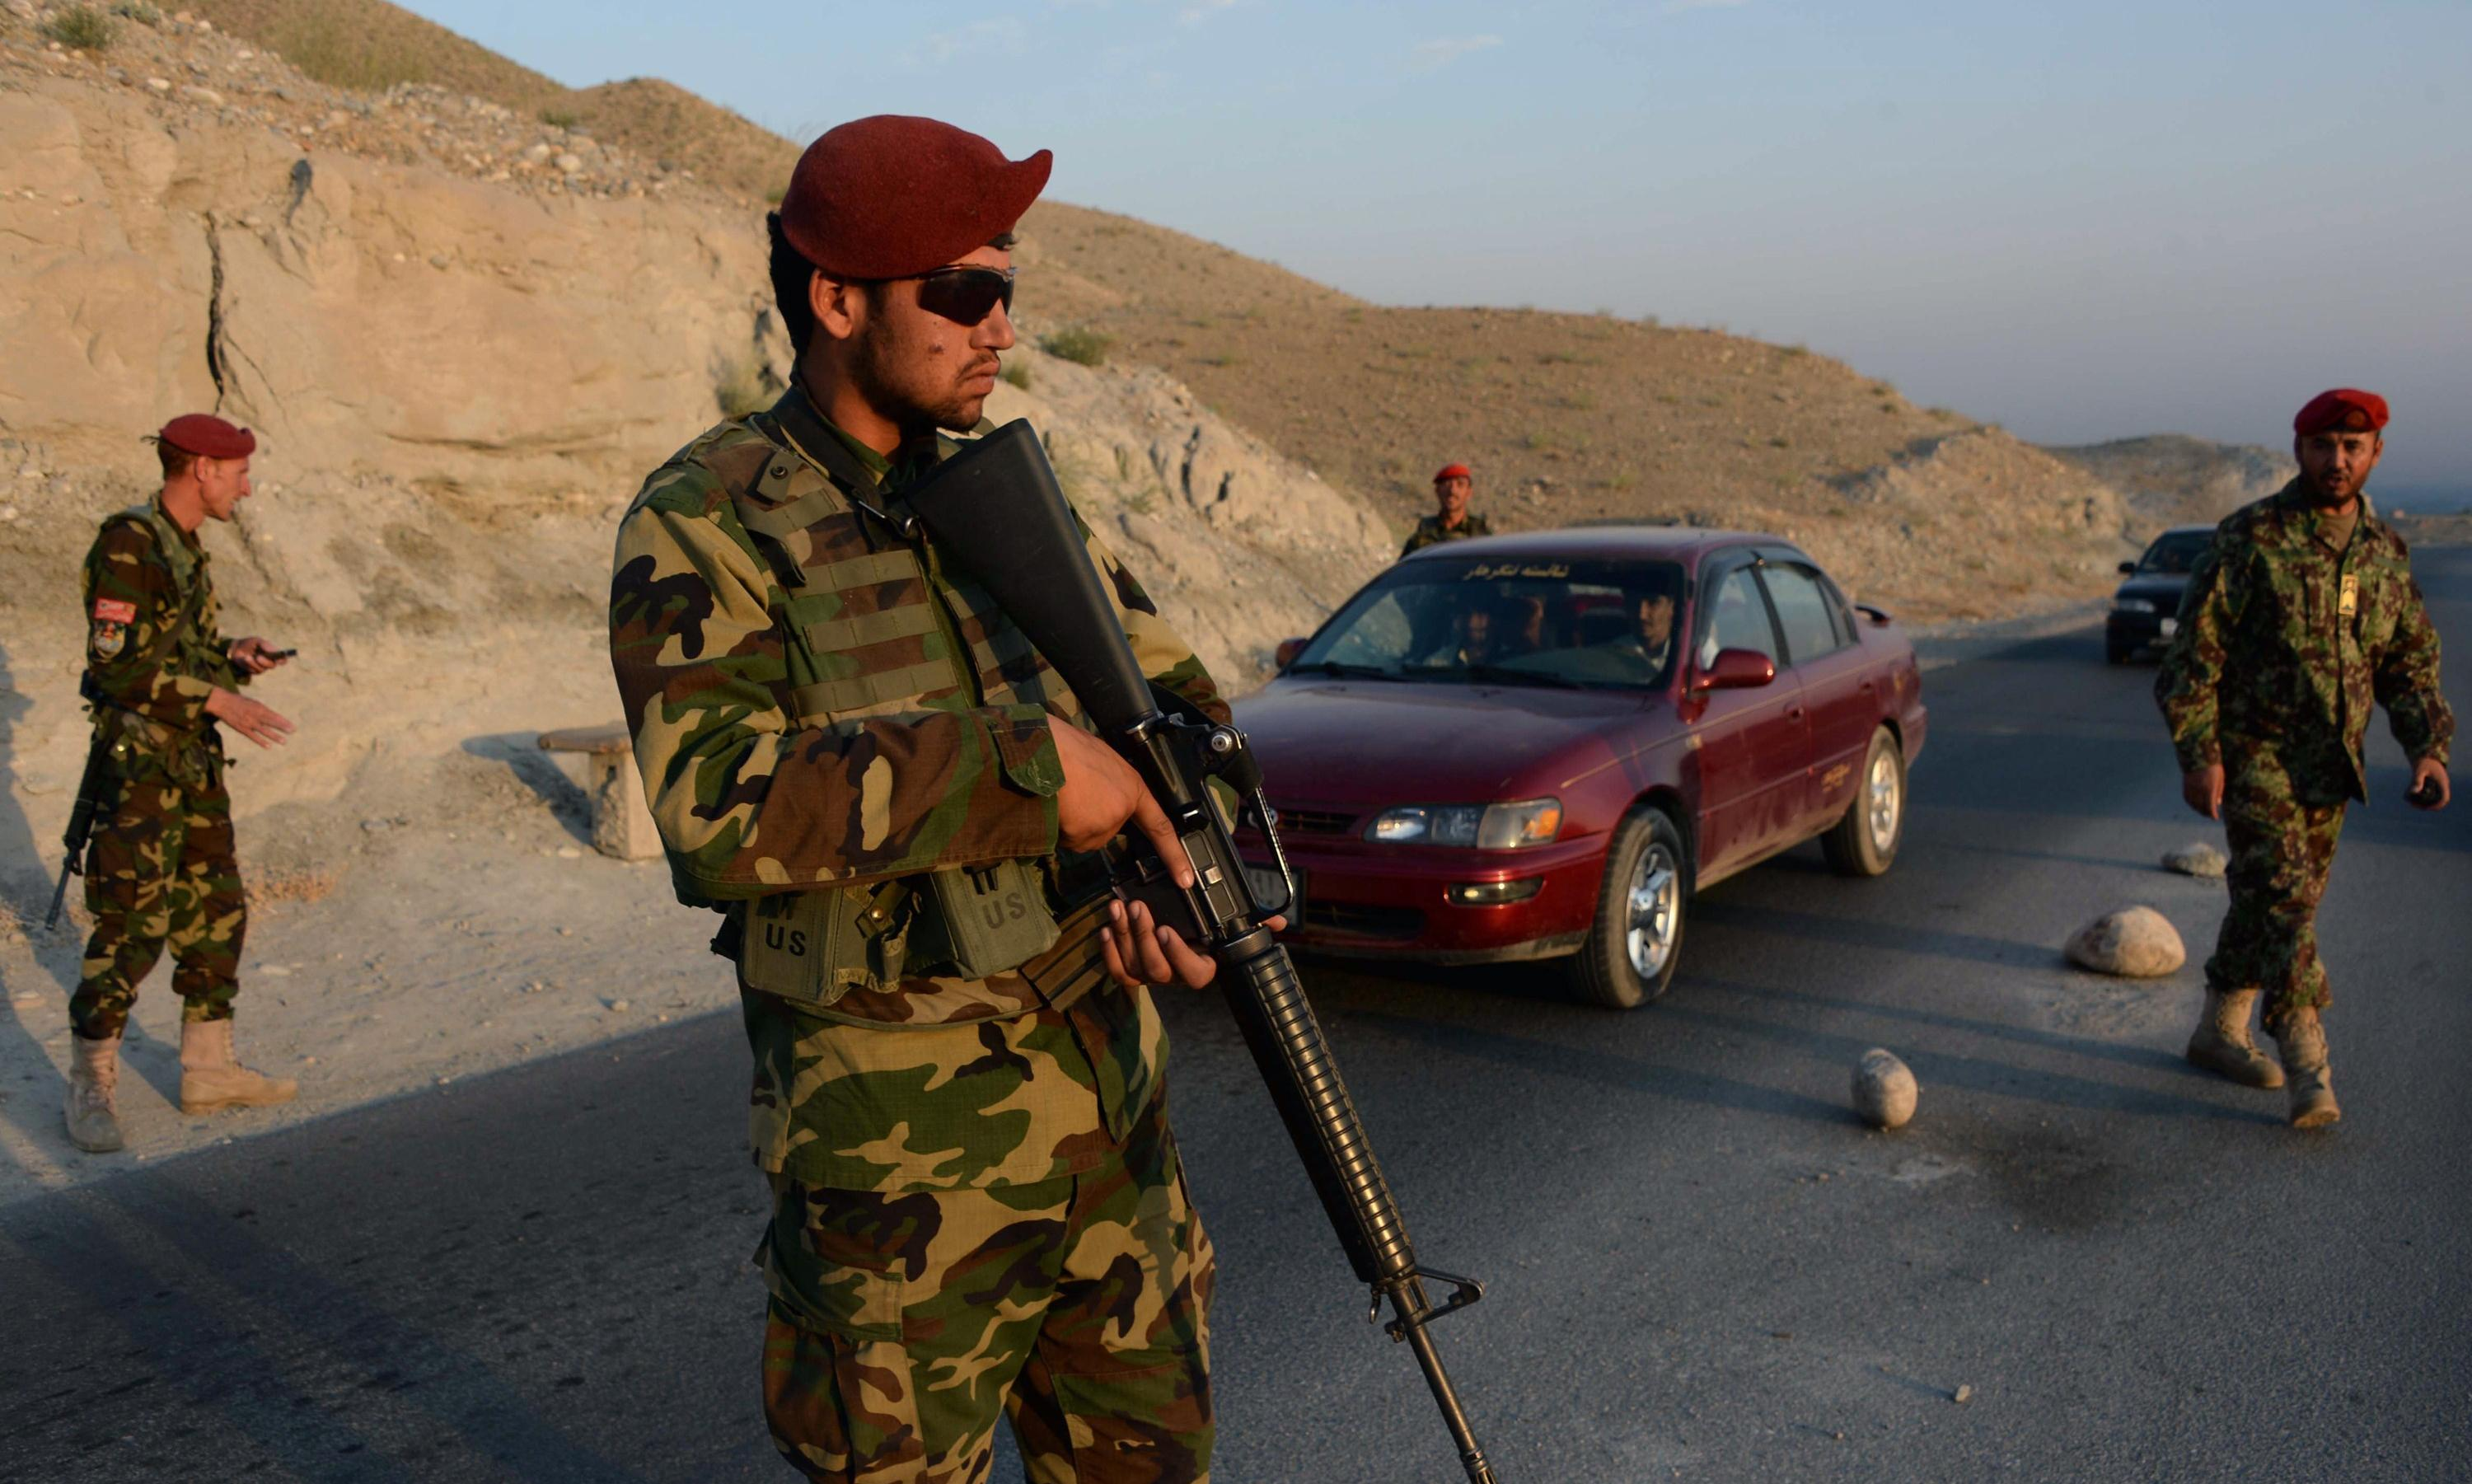 Afghan troops killed by Nato air strike, says official